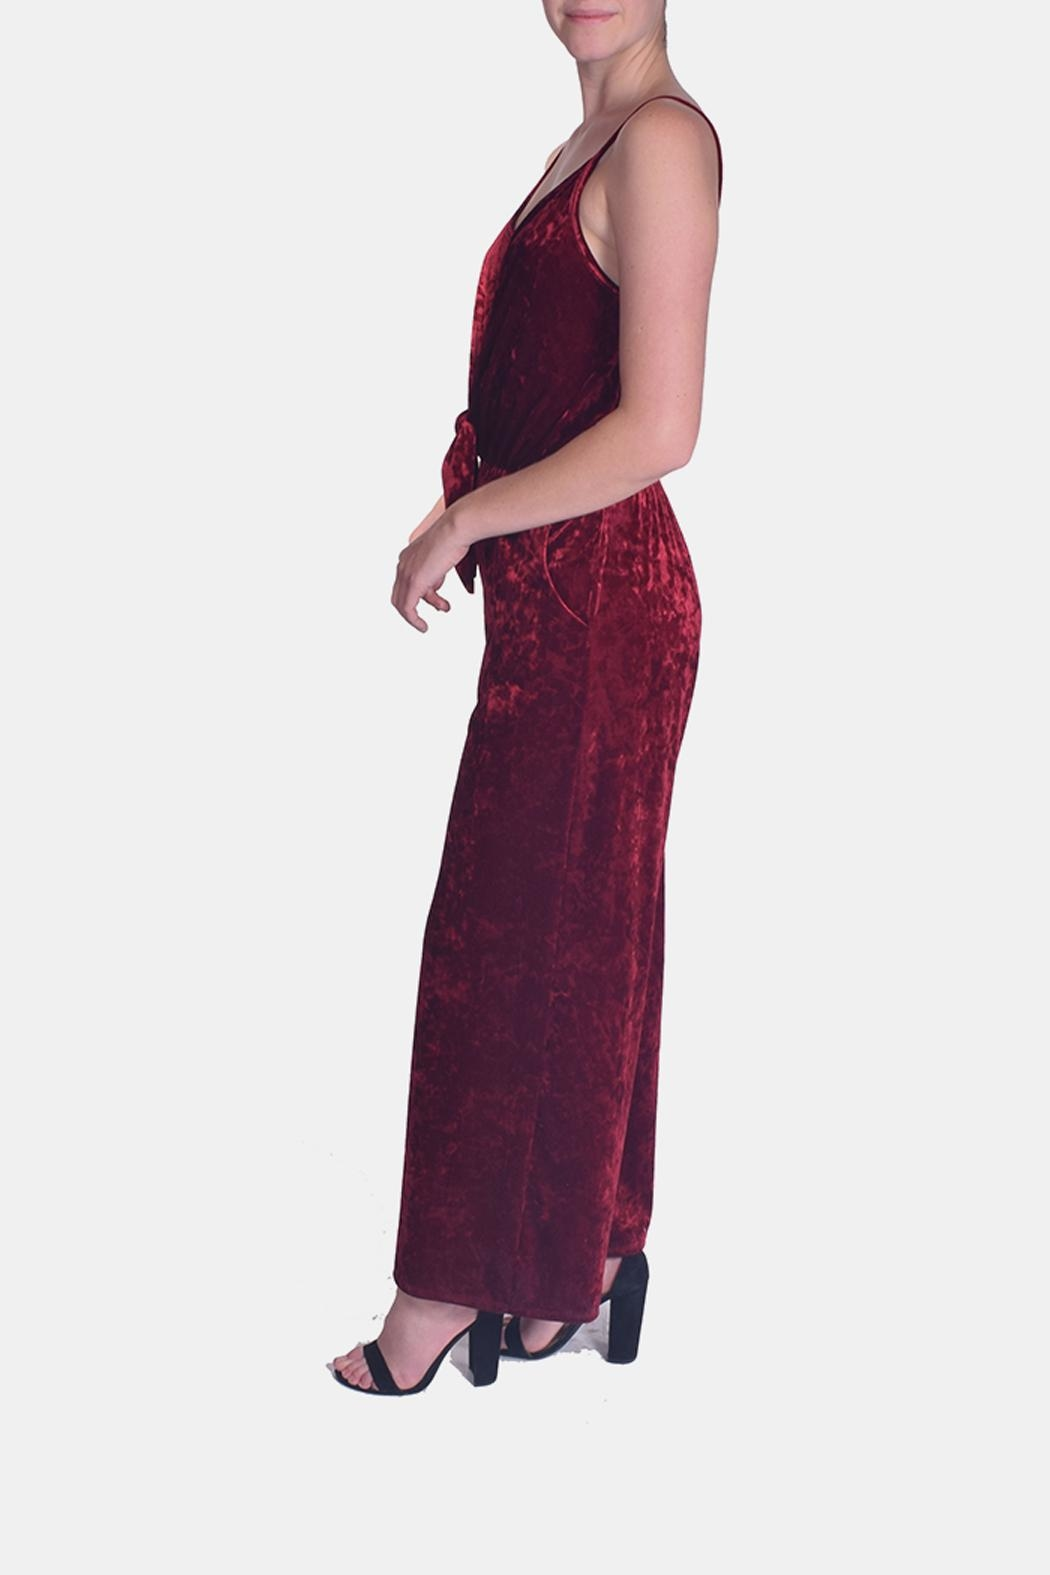 d11f9af995b Le Lis Scarlett Crushed-Velvet Jumpsuit from Los Angeles by Goldie s ...